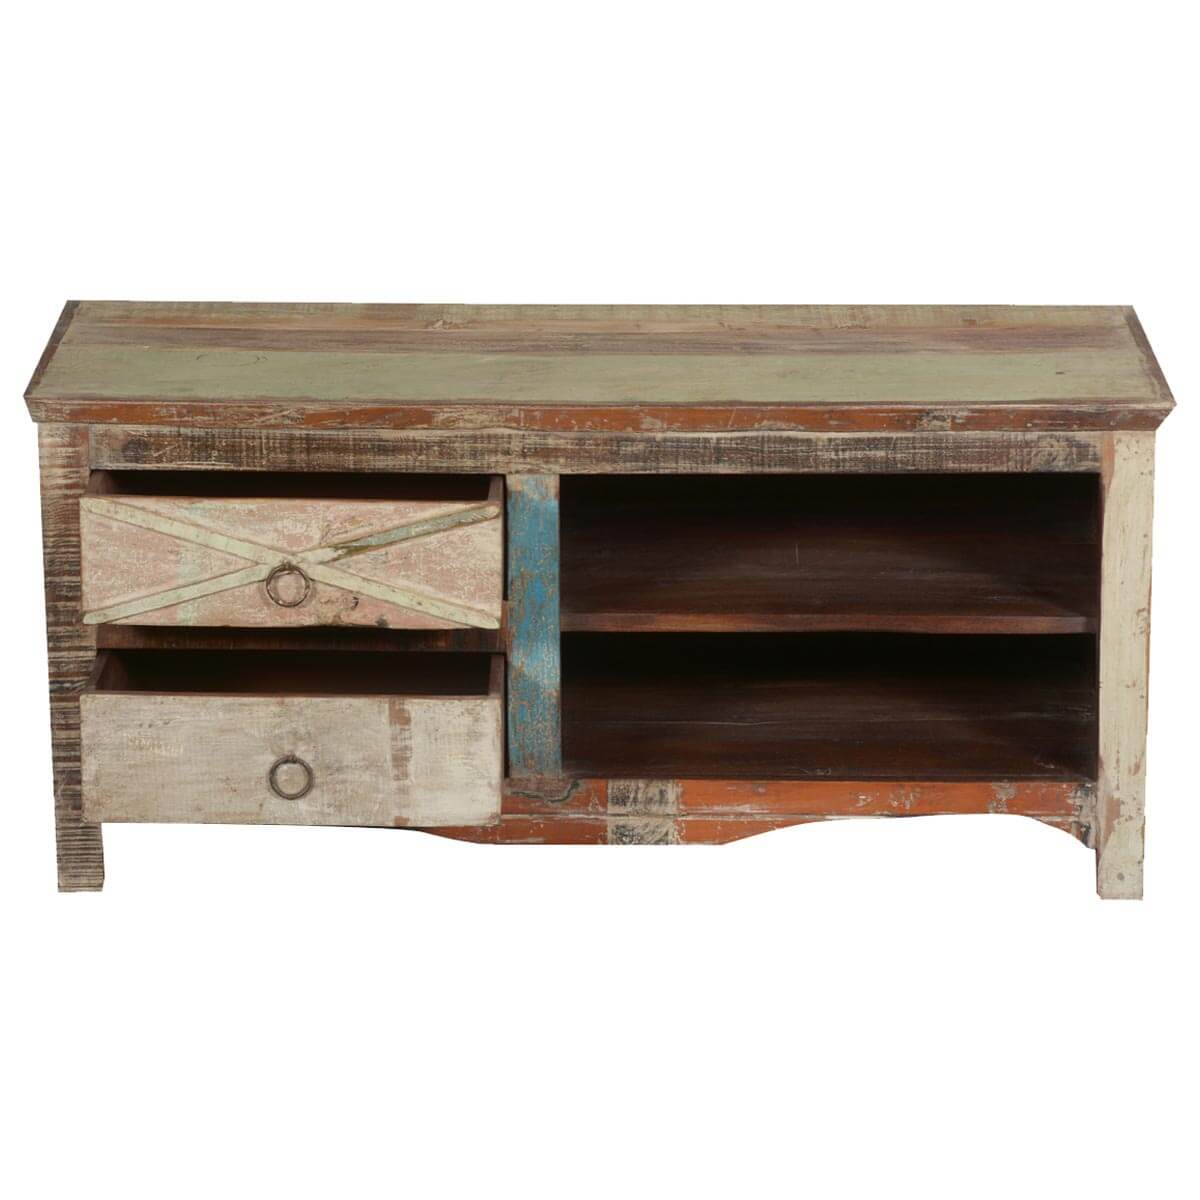 Ecogreen Rustic Reclaimed Wood Tv Console Media Center. Cost Of Adding A Bathroom. Neutral Living Room. Kansas Furniture Mall. Kitchen Window Treatments. Cool Shelves. How To Make A Mobile. Copper Pendant. Steampunk Home Decor